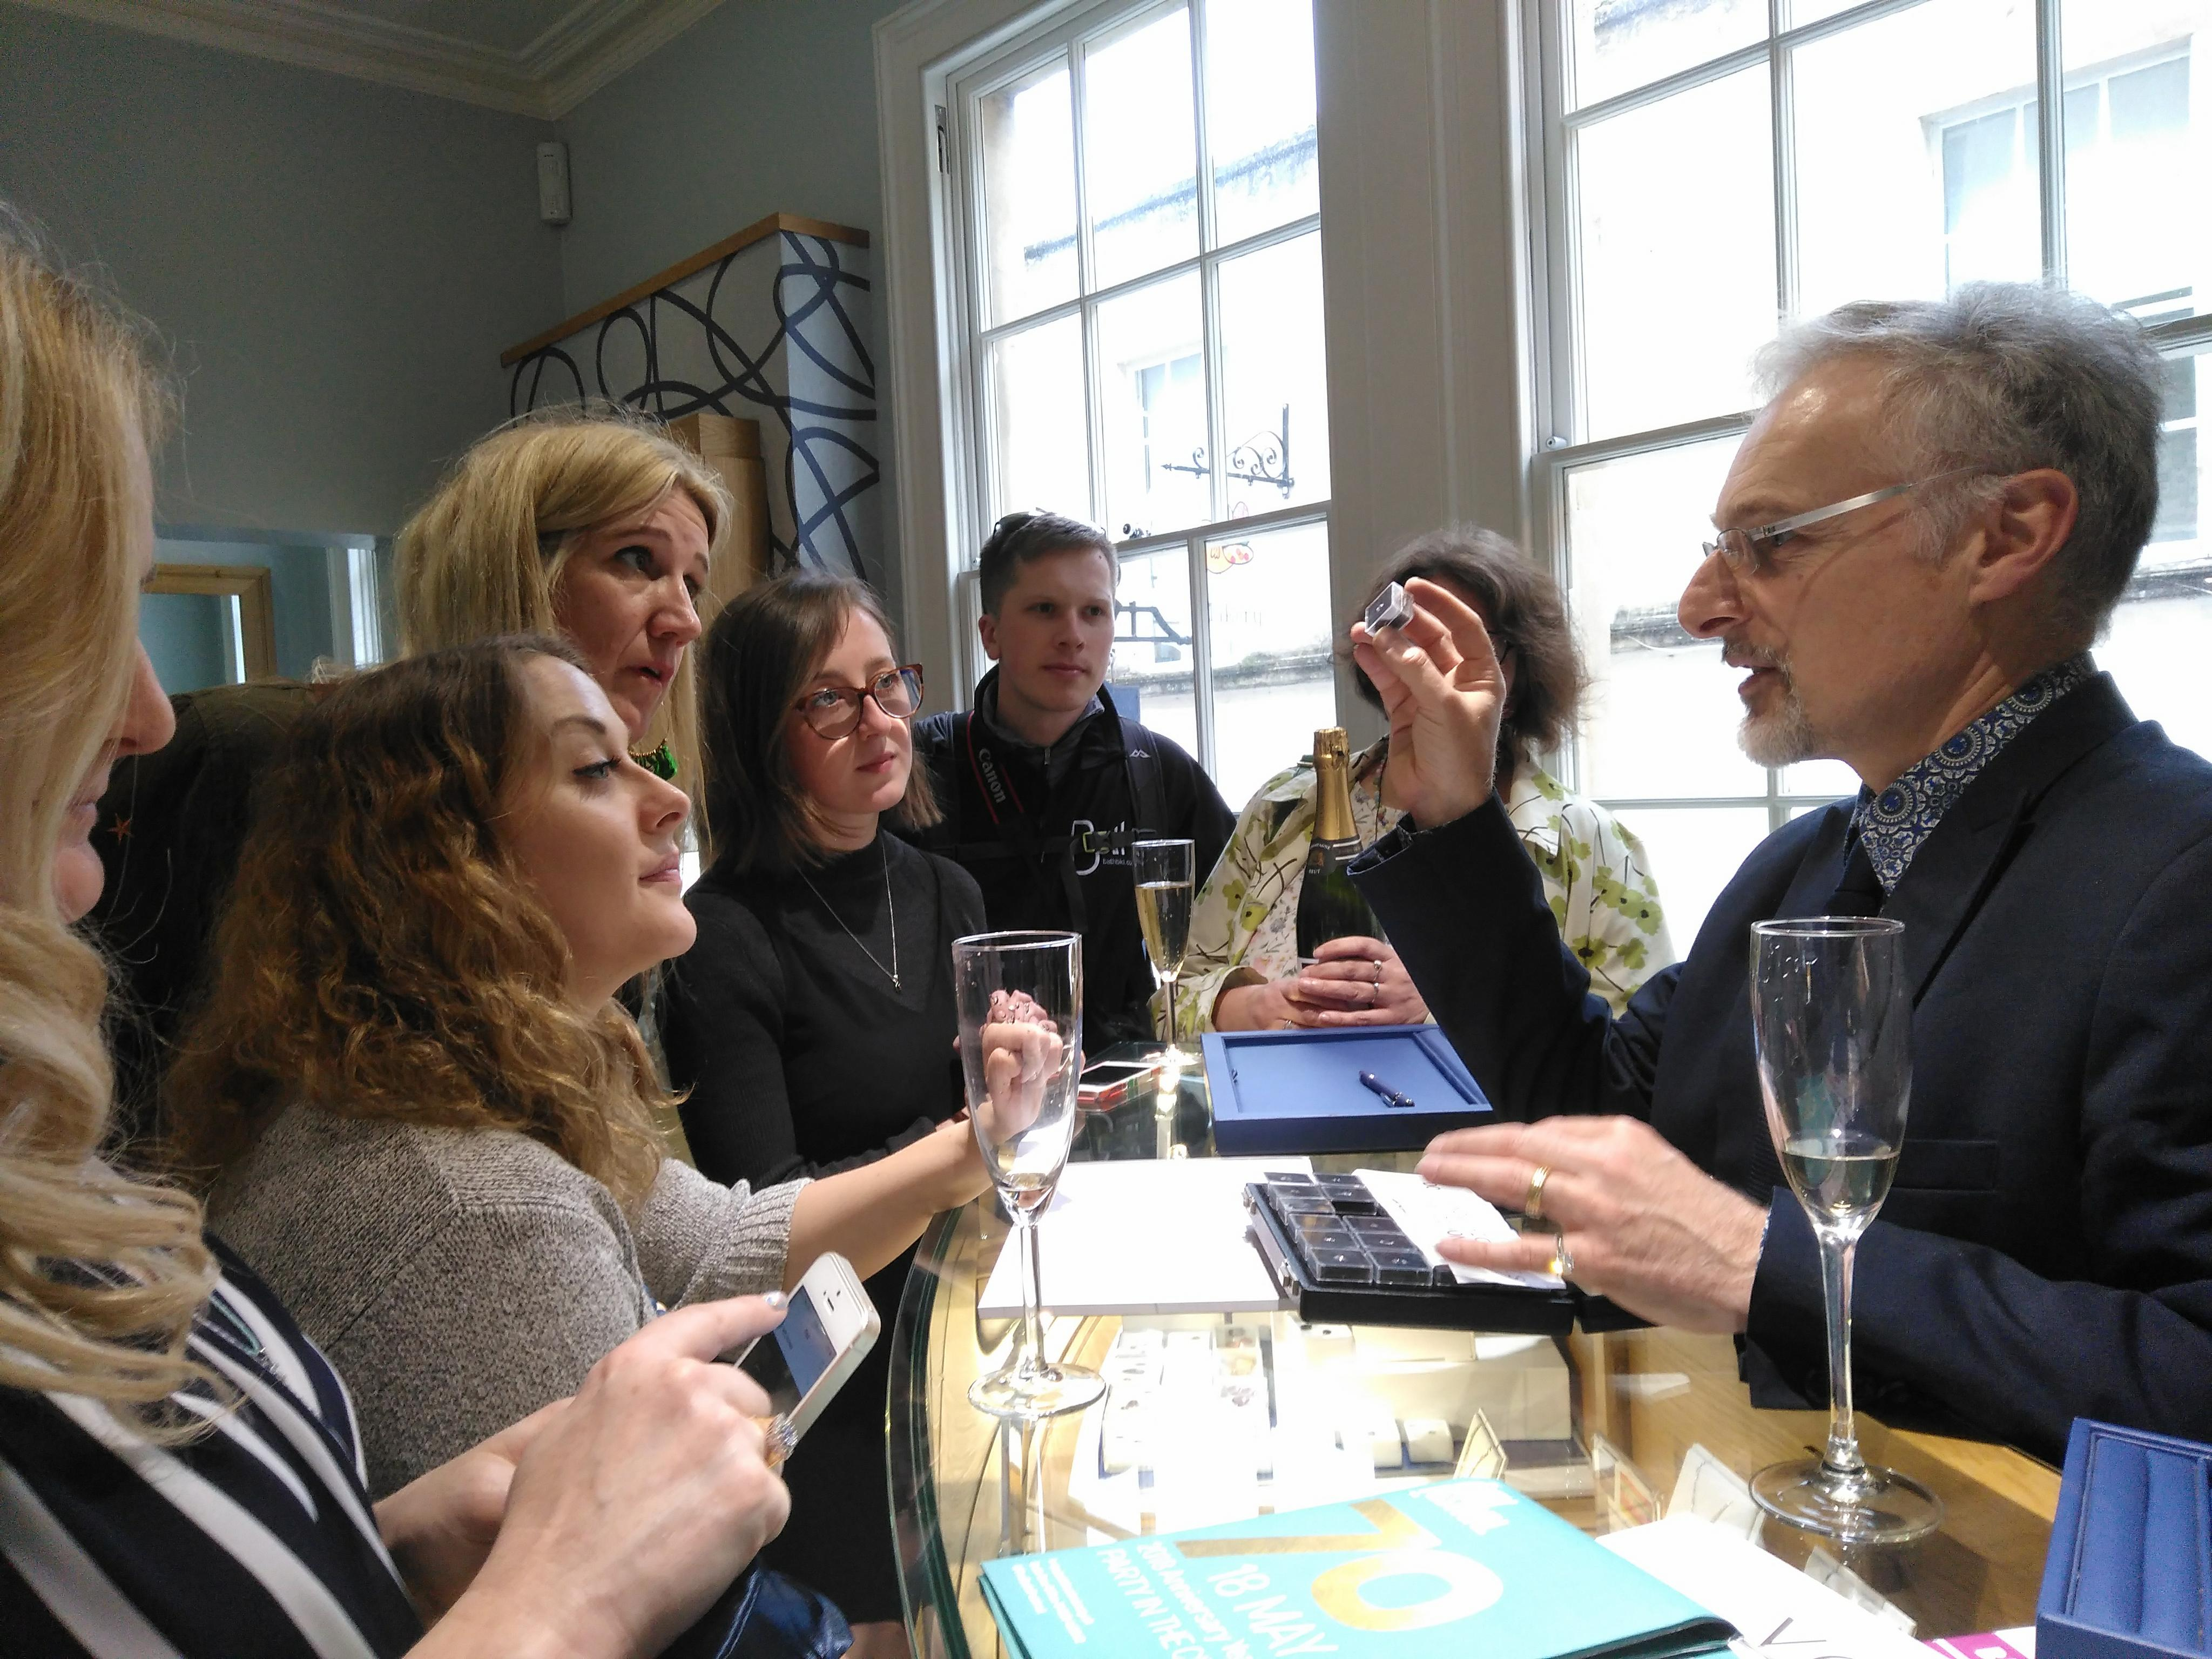 Bloggers in town:  Social media writers descend on our Bath store ahead of the Festival!